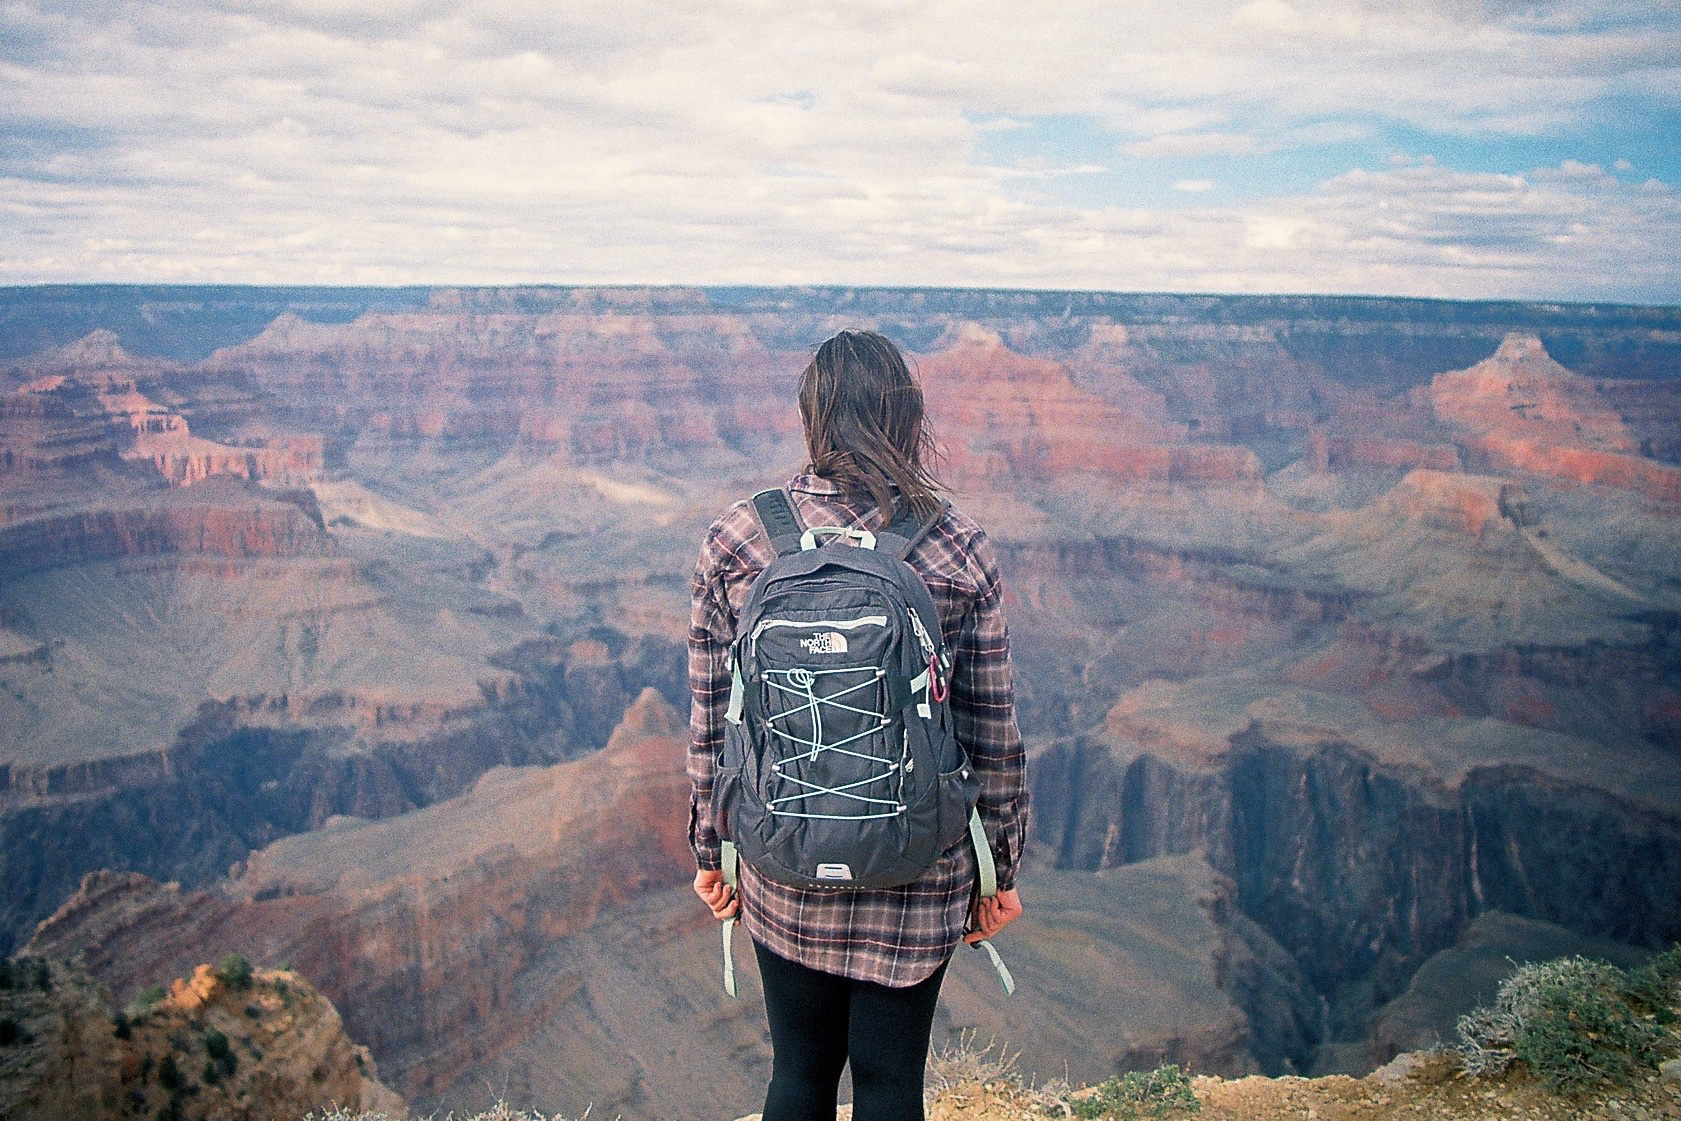 35mm-film-Arizona-lifestyle-Grand-Canyon-1.jpg